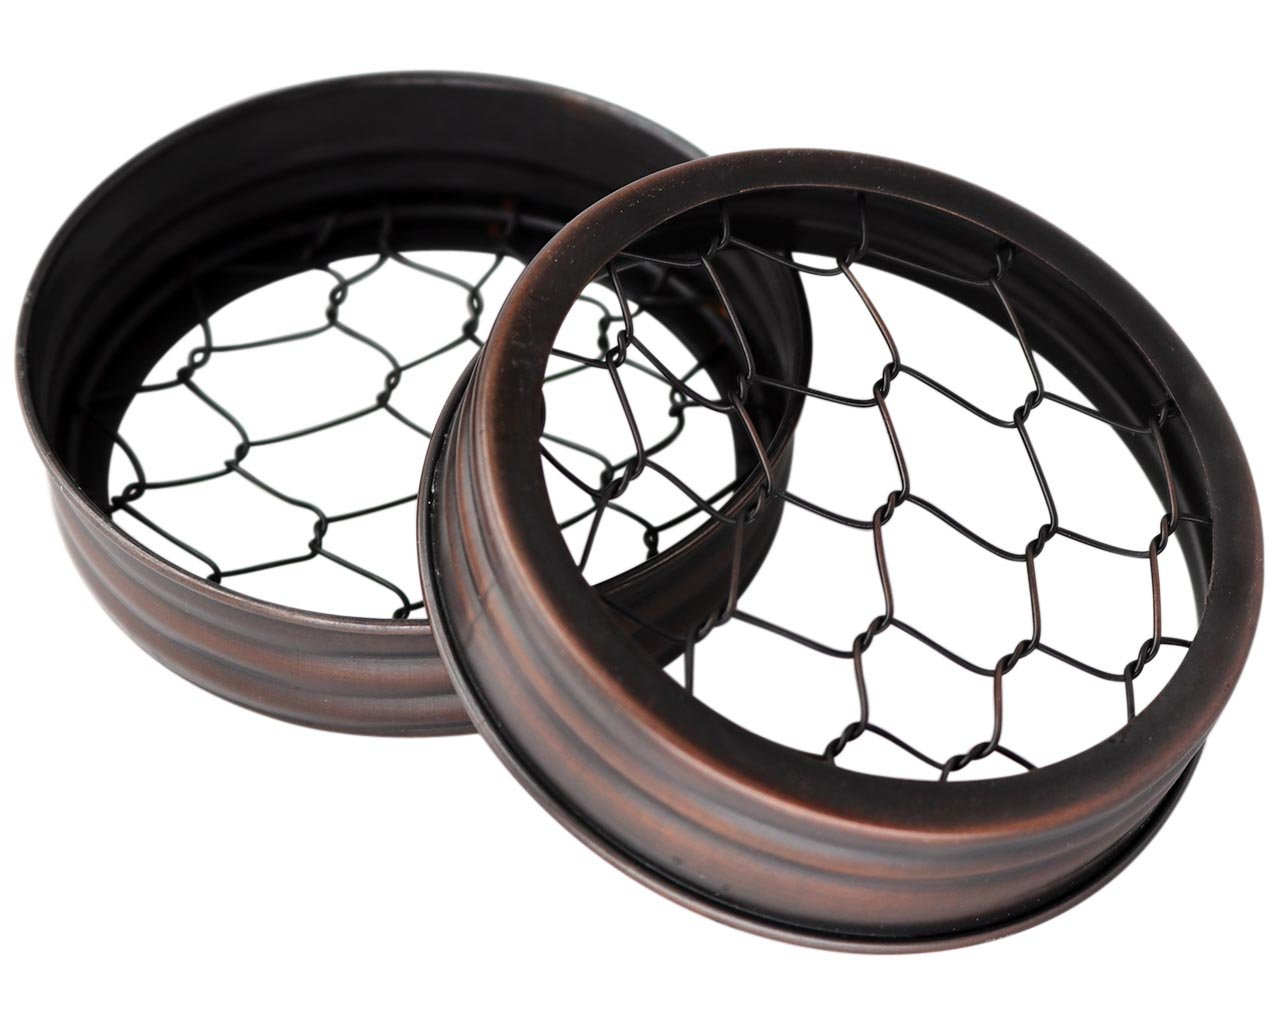 Oil Rubbed Bronze Flower Organizer Frog Lid for Mason Jars (3 Pack, Wide Mouth)